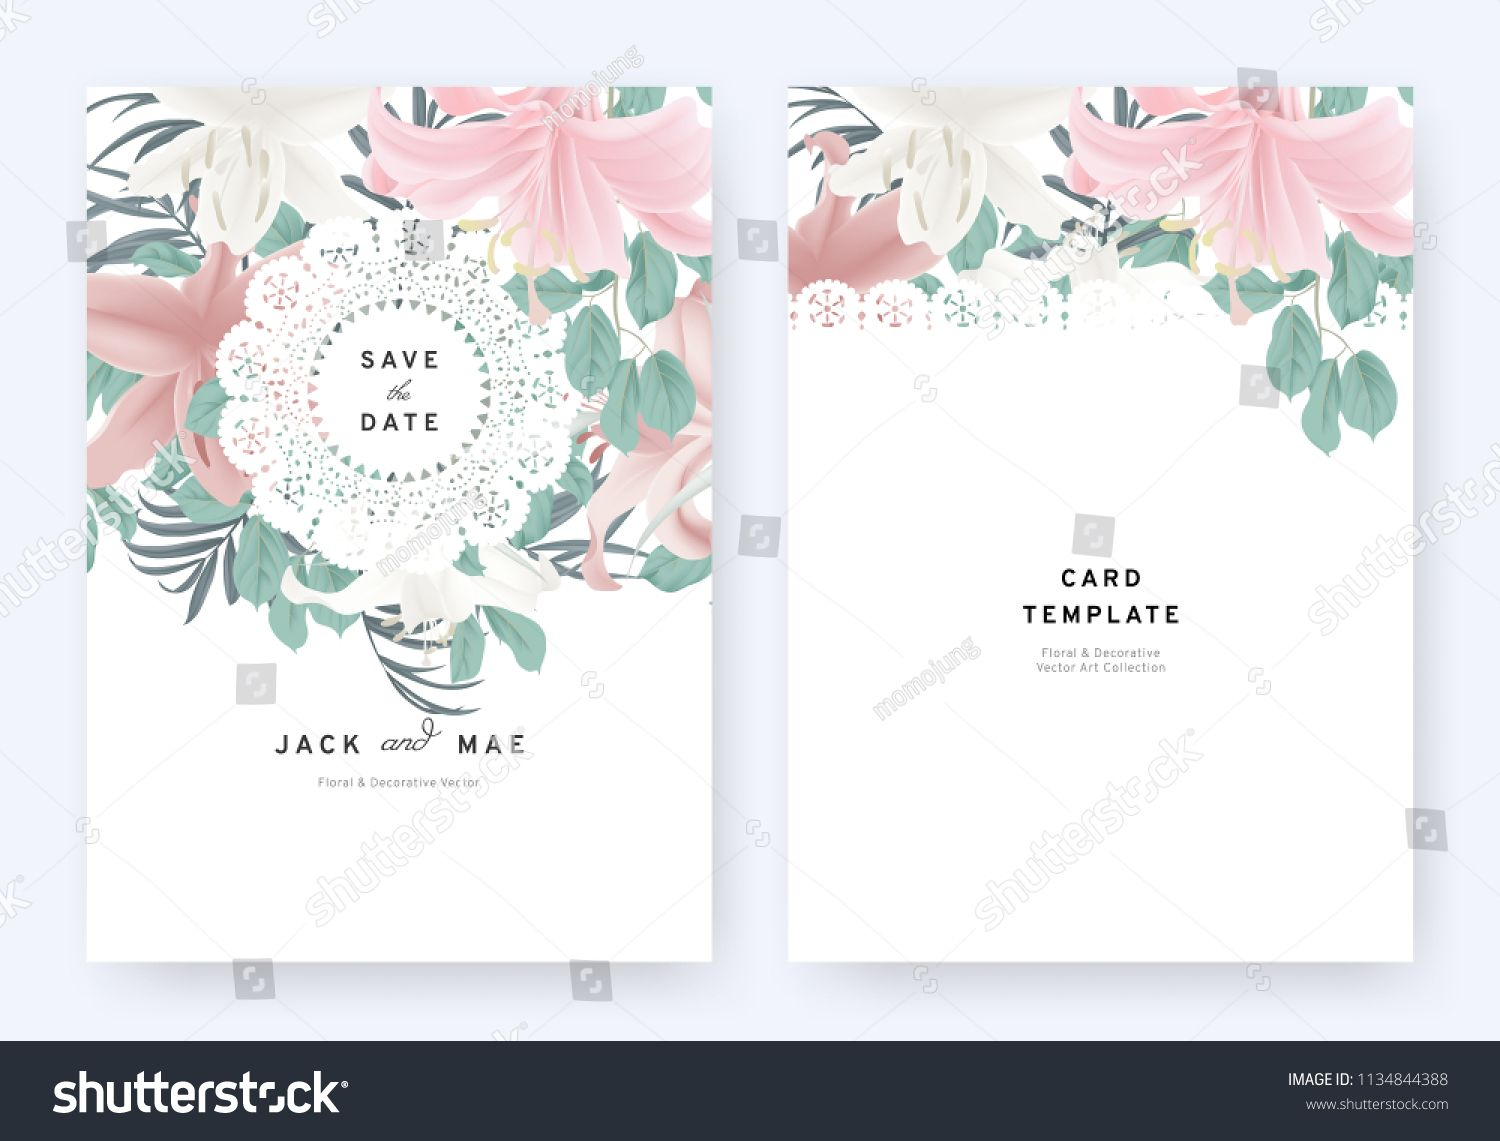 Floral Invitation Card Template Design White Pink Lily